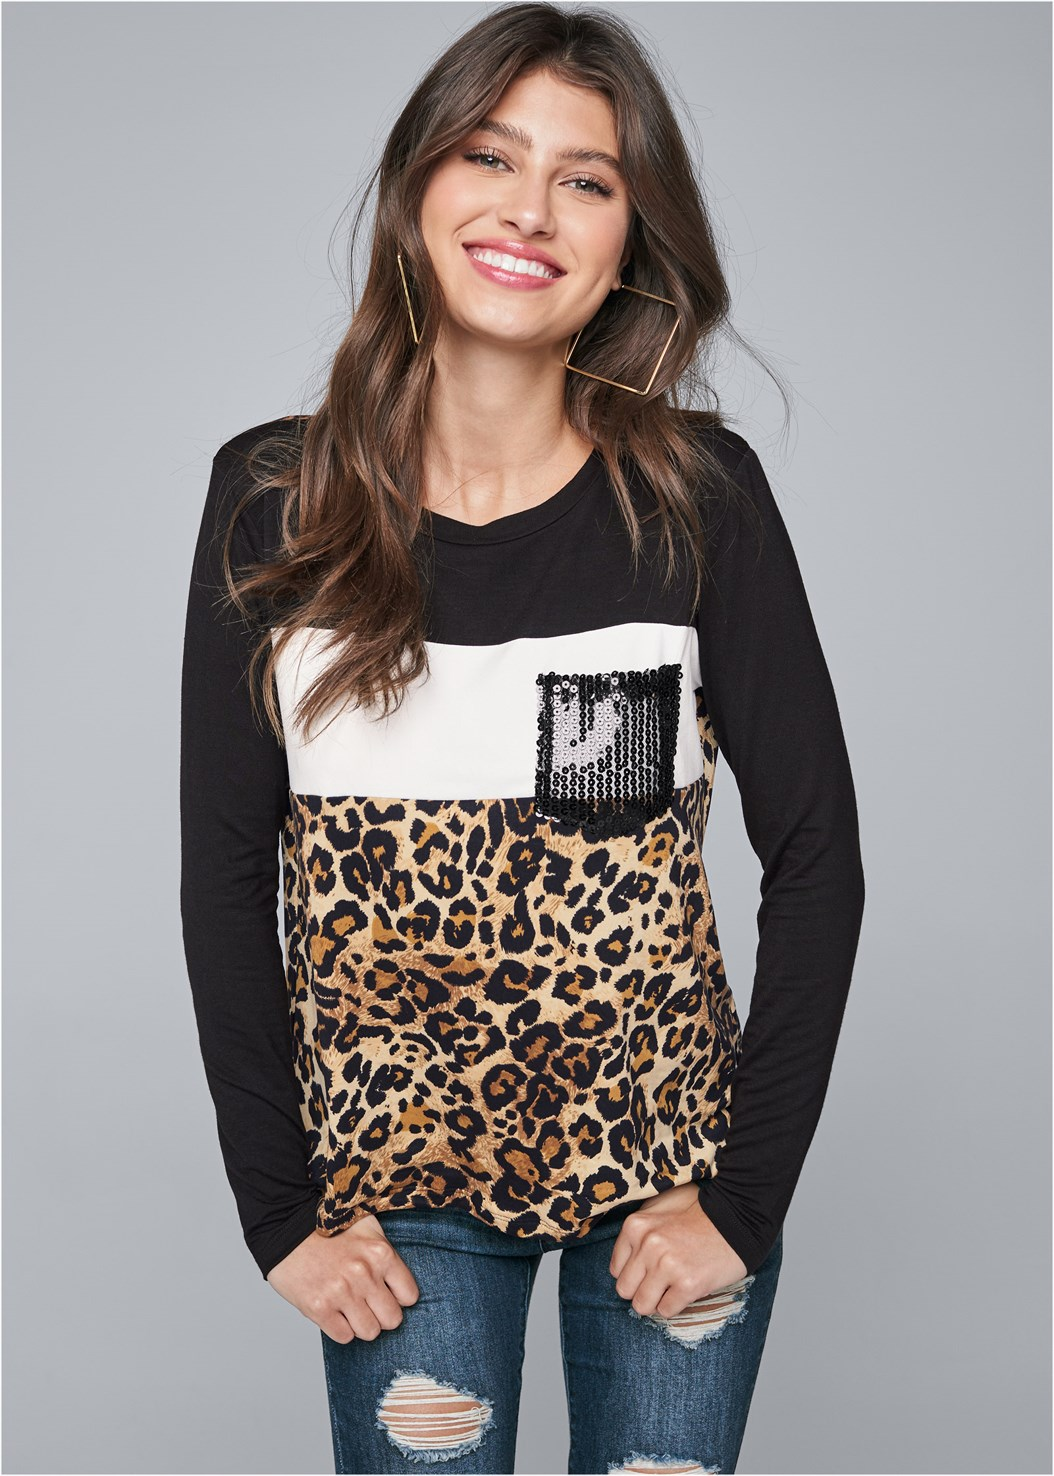 Leopard Print Sequin Top,Ripped Bum Lifter Jeans,Peep Toe Booties,Square Hoop Earrings